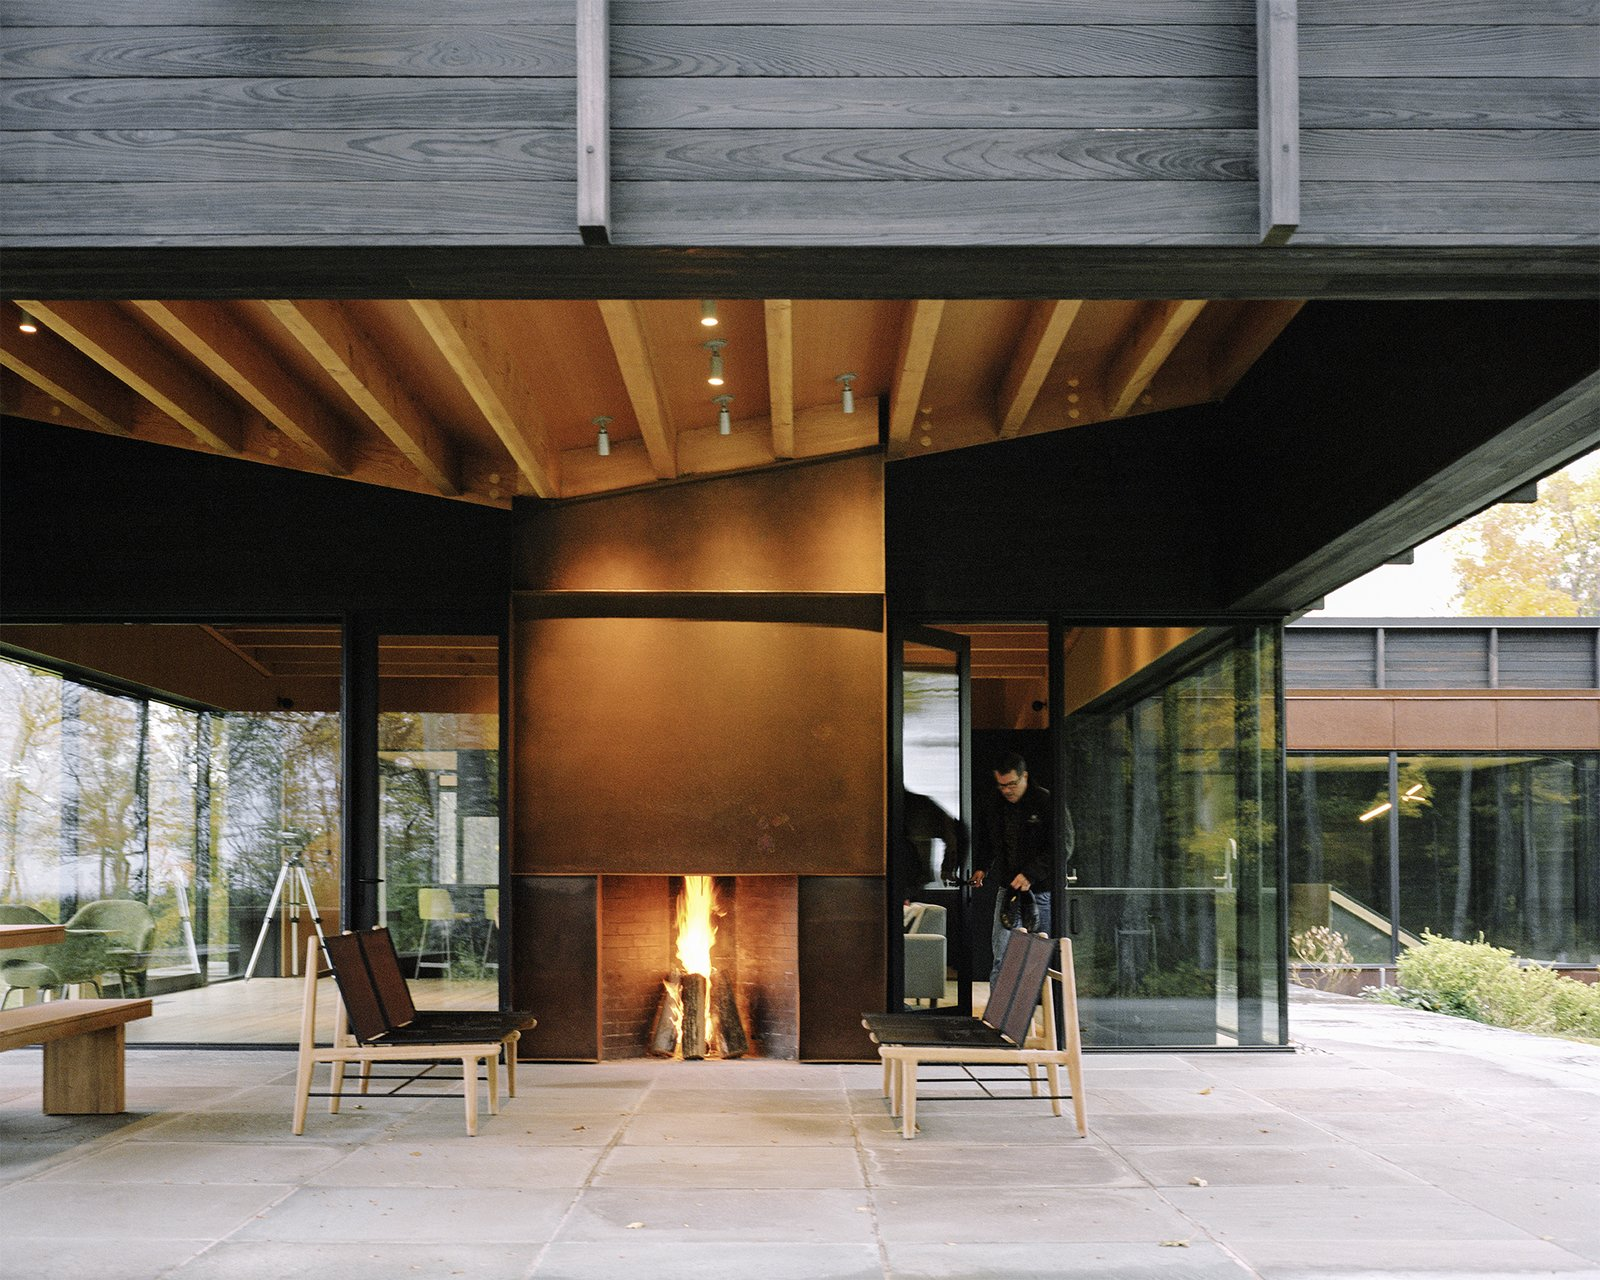 Outdoor, Back Yard, Large Patio, Porch, Deck, and Shrubs The home's undulating roof, composed of exposed wood beams and plywood sheathing, references the rolling terrain. A Cor-Ten steel–clad outdoor fireplace was built by BRD Construction; the same material was used for the interior fireplace, as surround on some windows, as cladding for the garage door, and on the chimney. The lounge chairs are from the Finn Collection from Design Within Reach. Tim Kirby of Surface Design Inc. tackled  the site's landscape architecture. - Leelanau County, Michigan Dwell Magazine : September / October 2017  Best Photos